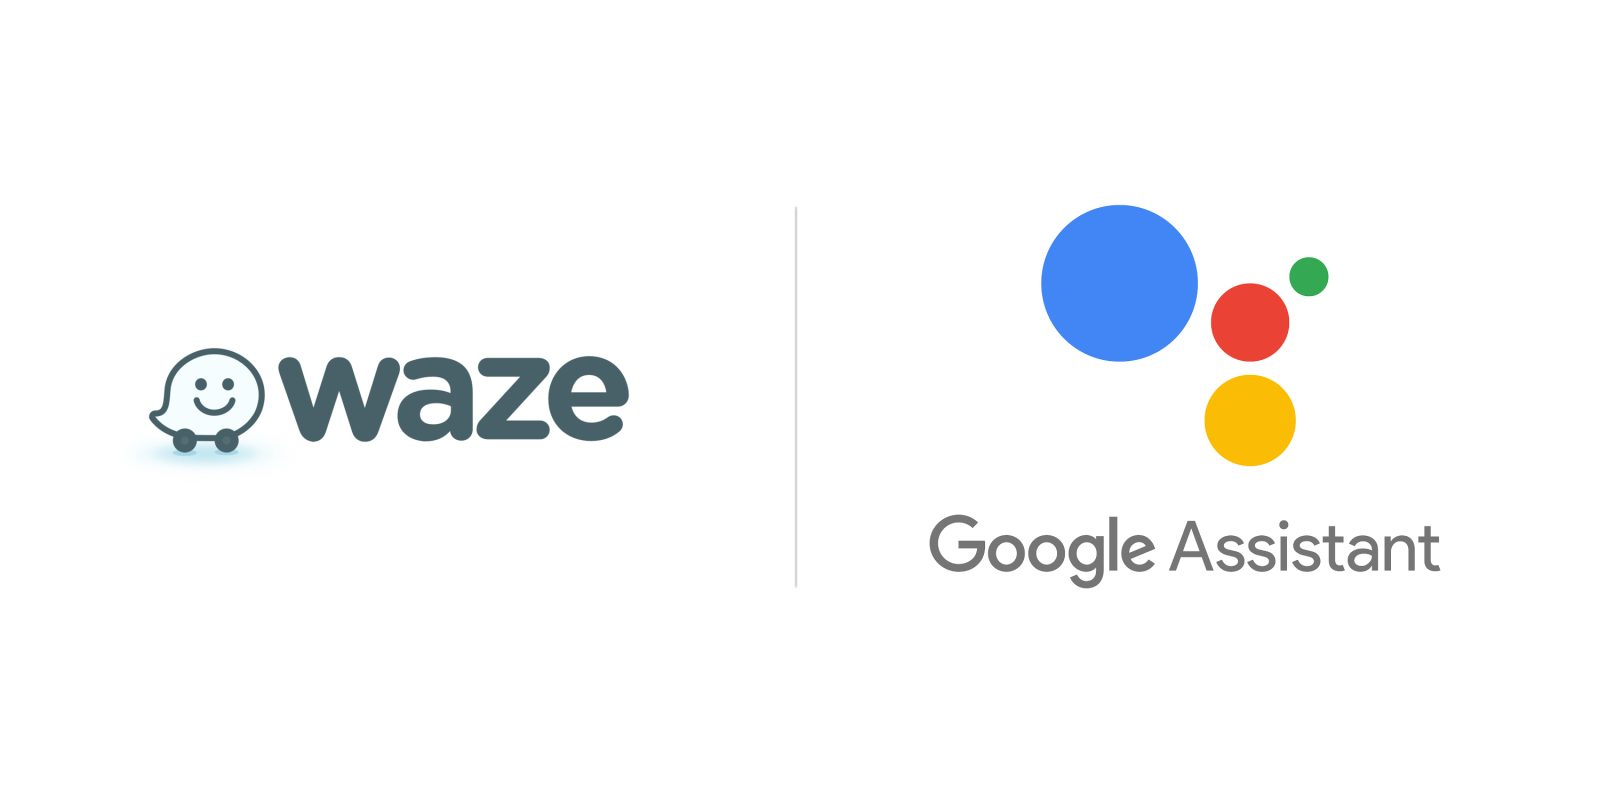 Google Assistant rolling out to Waze for Android - 9to5Google